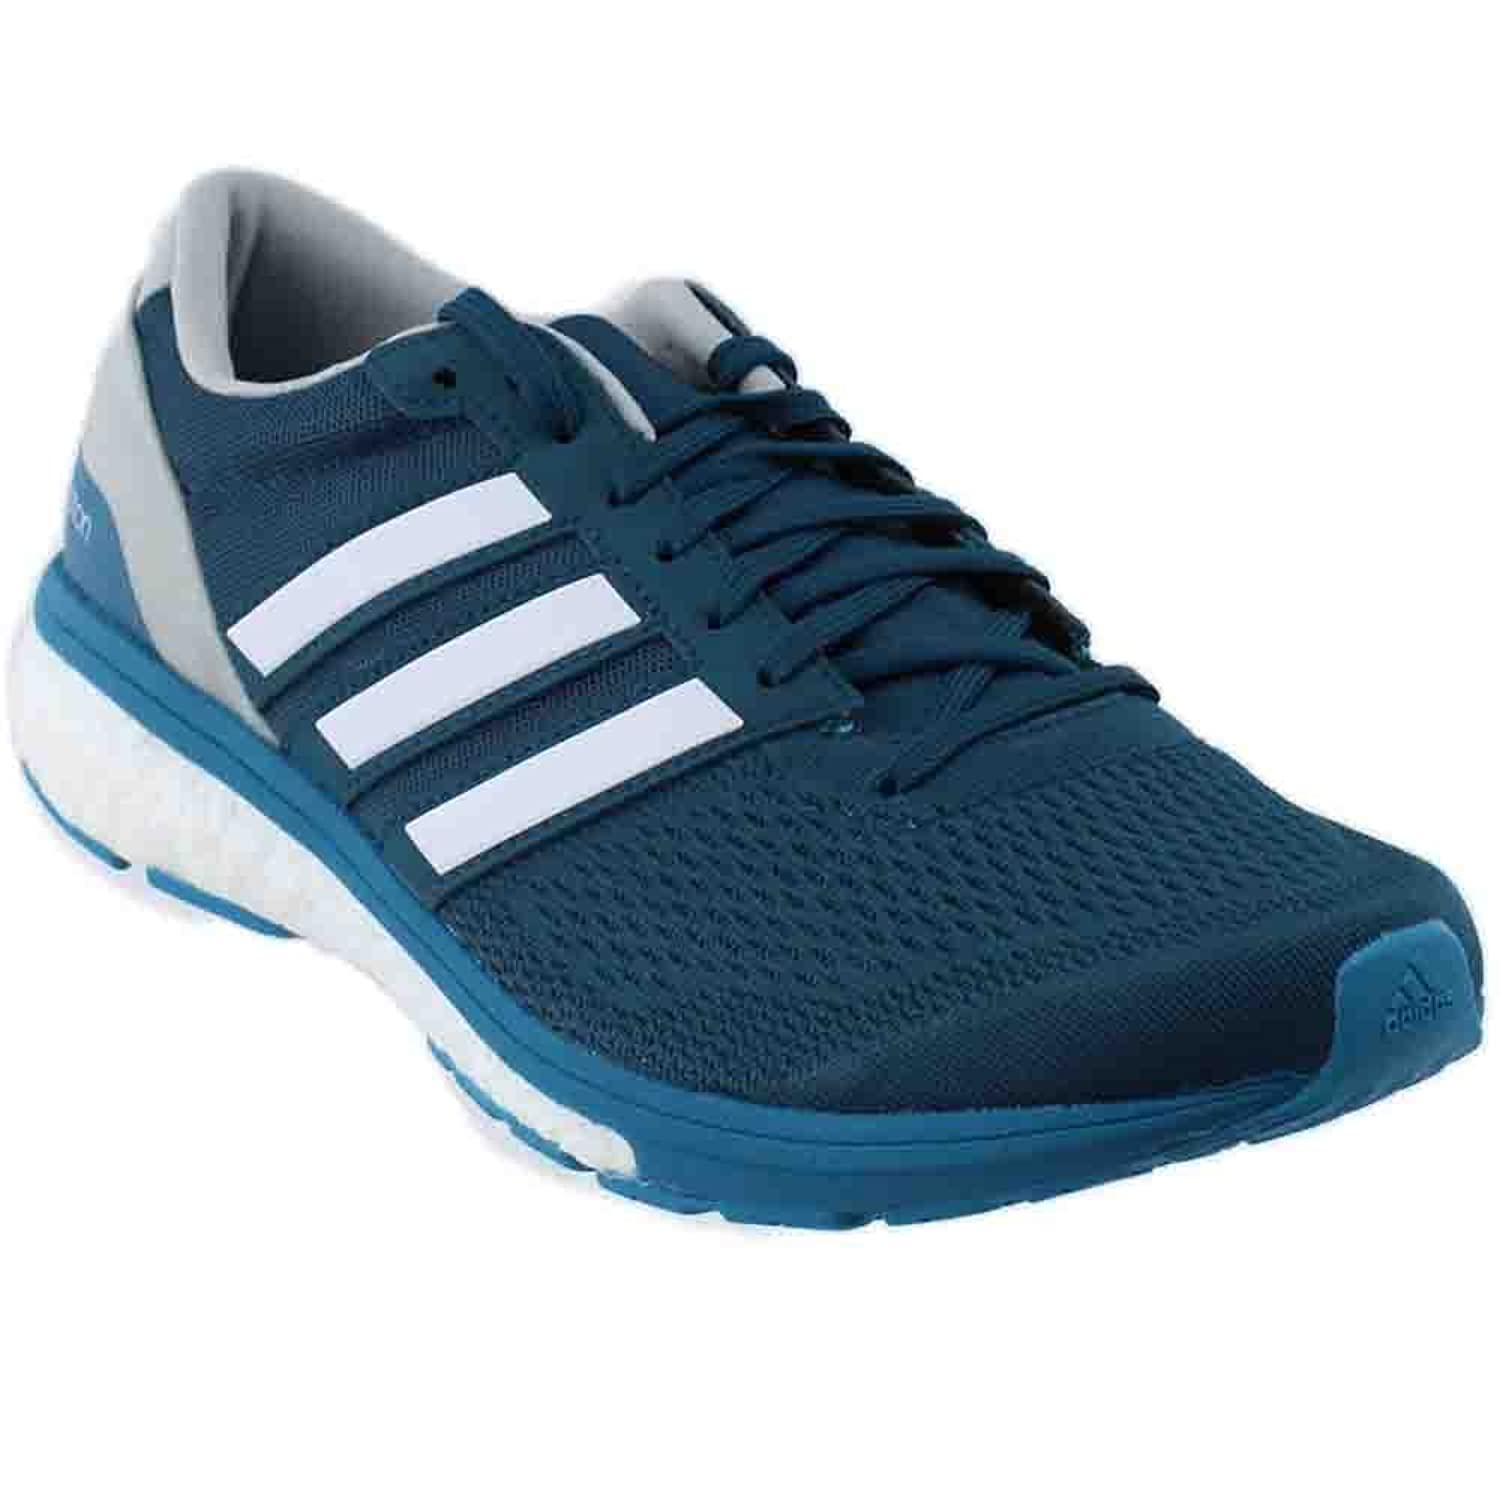 Adidas Adizero Boston 3 Amazon nGrprn5Xl